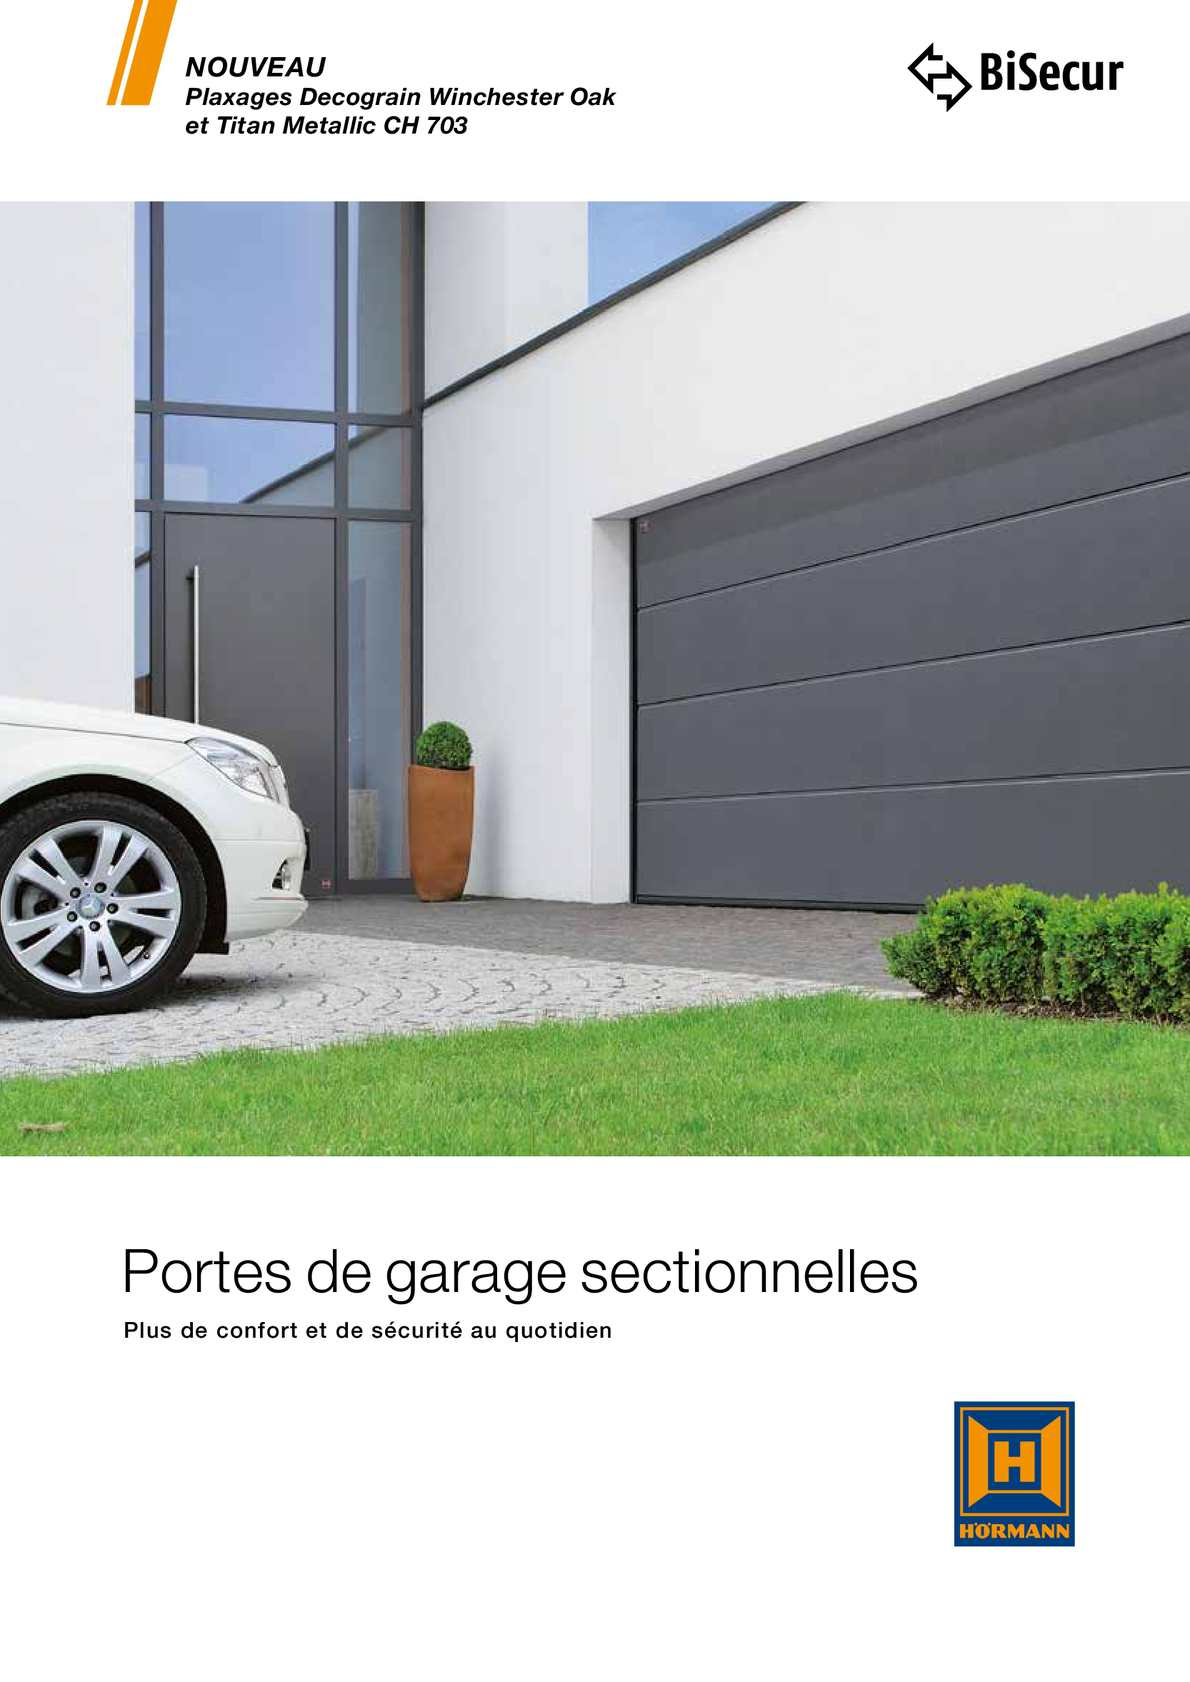 Calam o hormann porte de garage for Porte de garage 60 mm